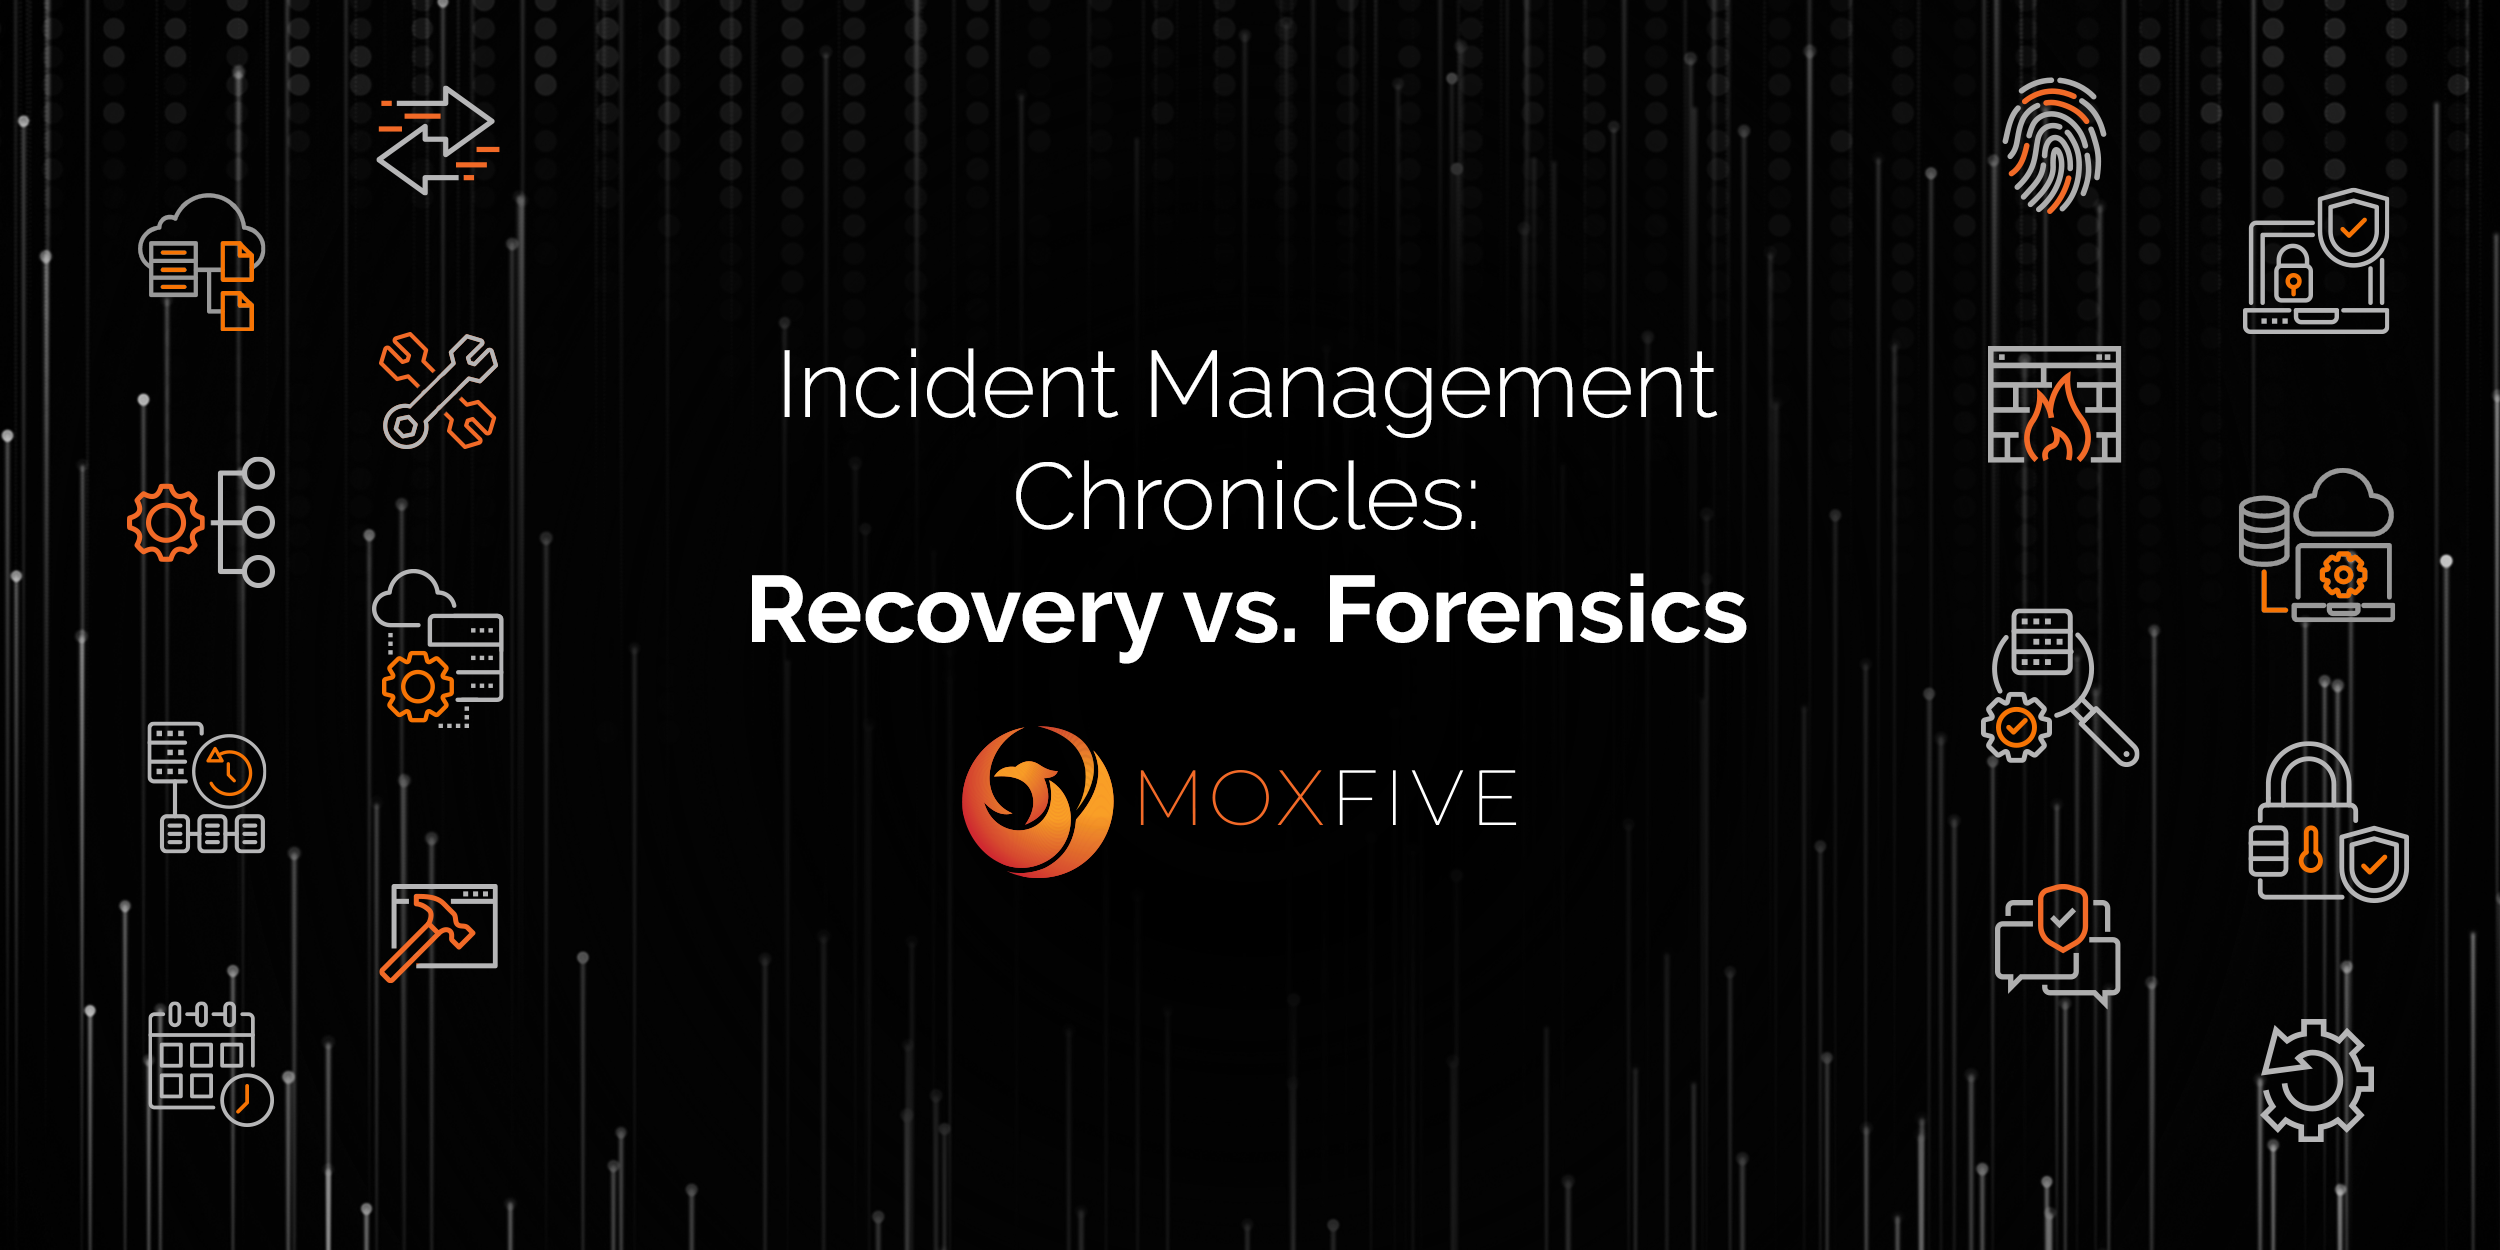 Incident Management Chronicles: Recovery vs Forensics